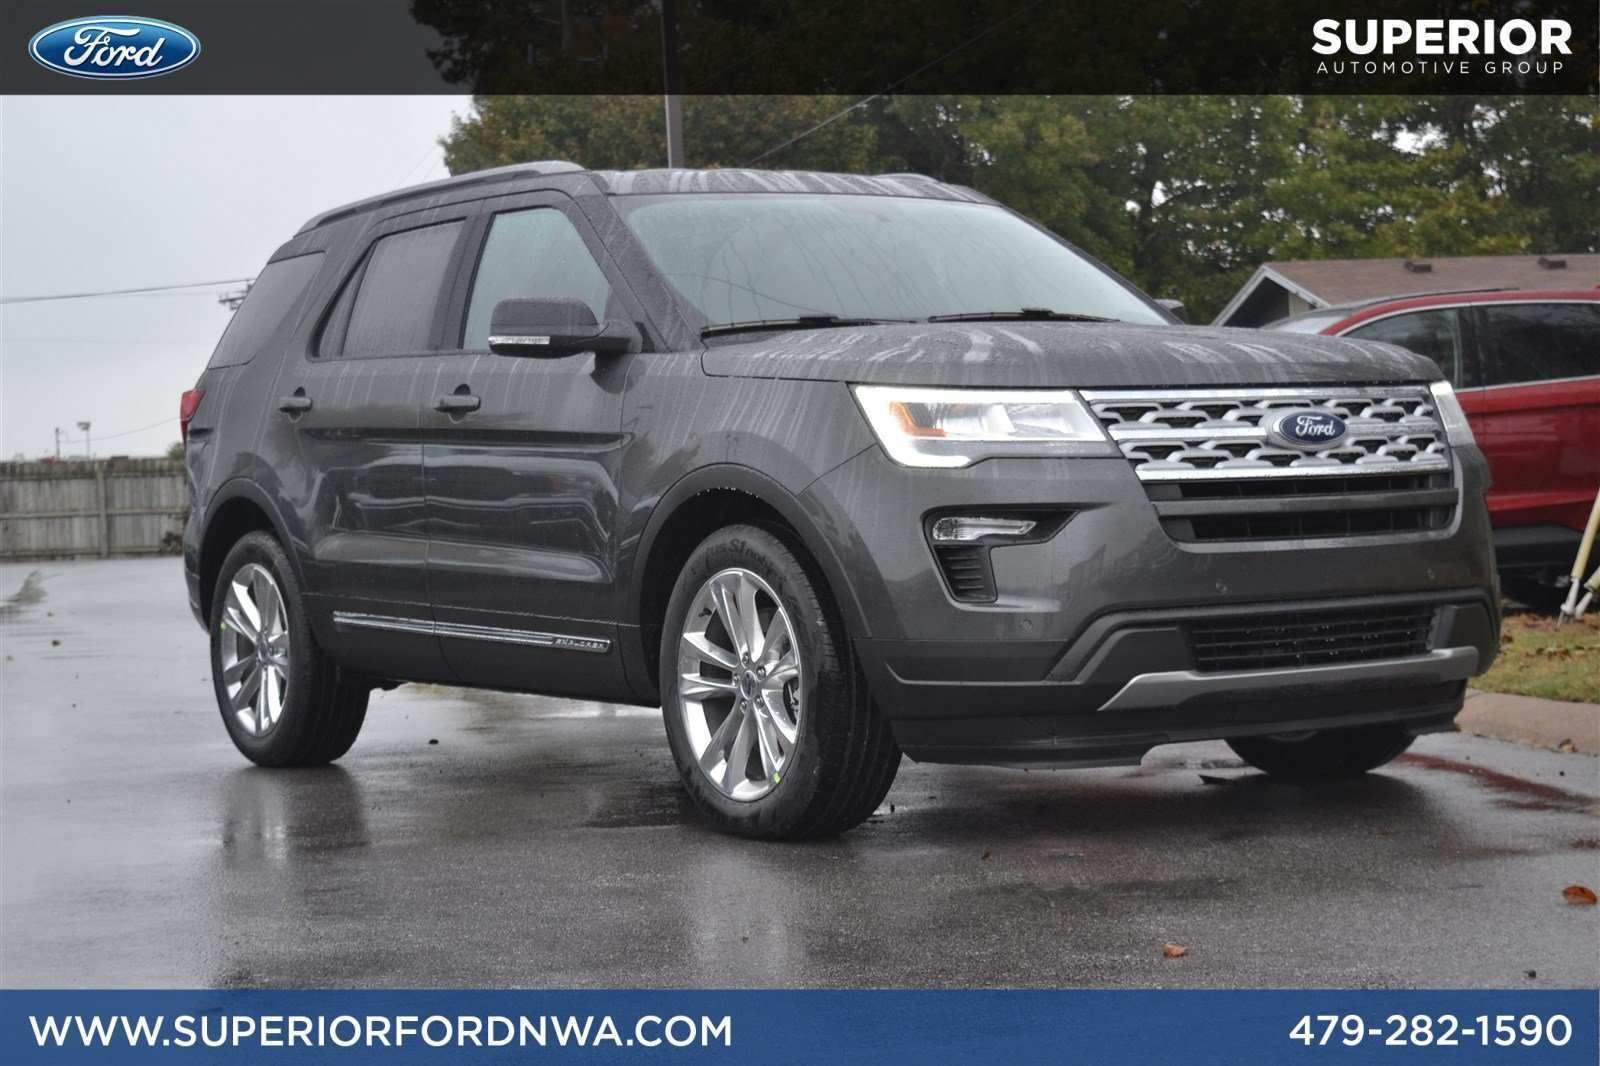 48 New 2019 The Ford Explorer Performance